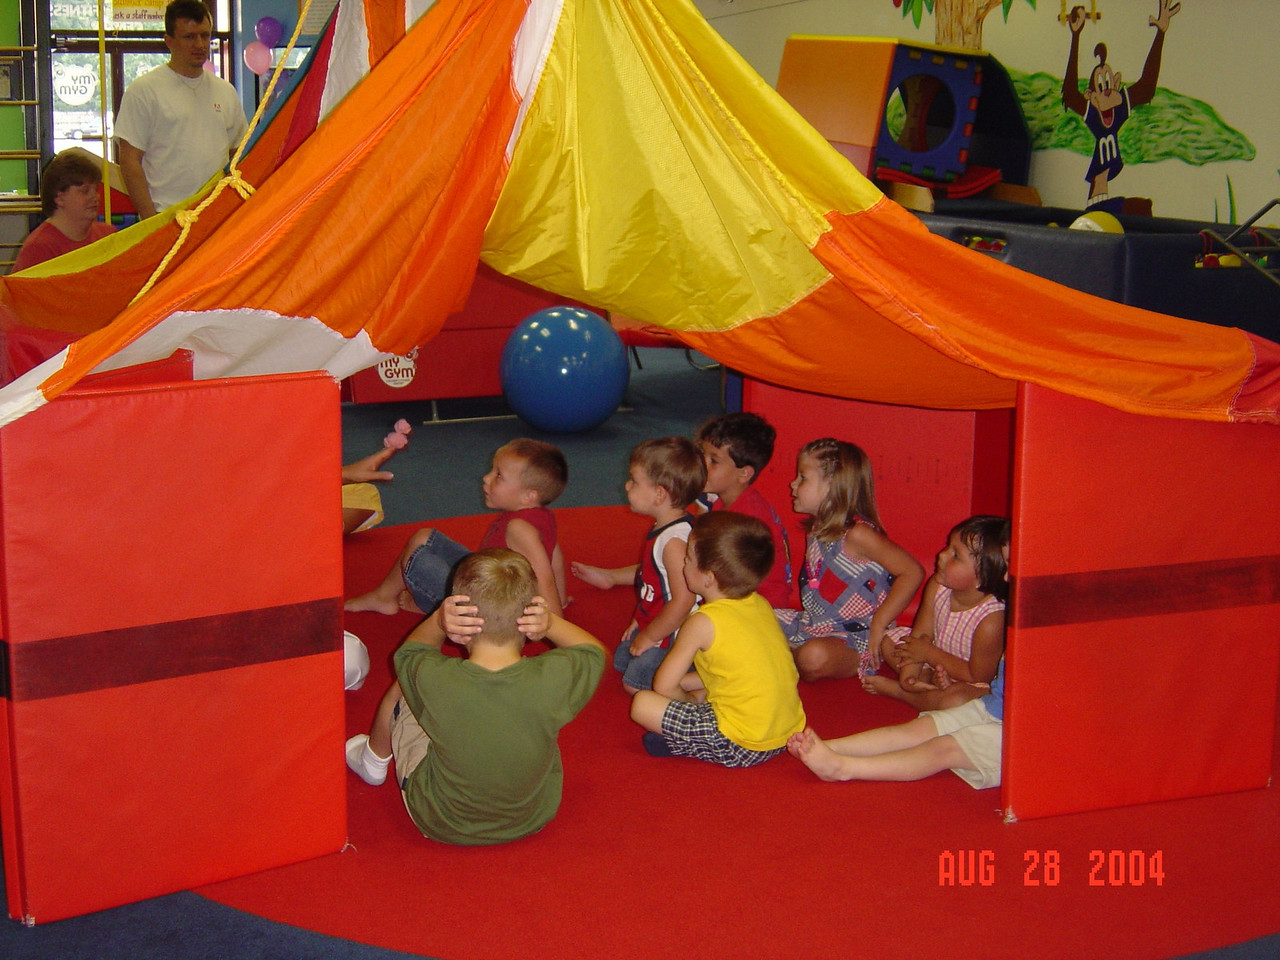 Kids_under_the_tent_Nat's_party_08-28-04